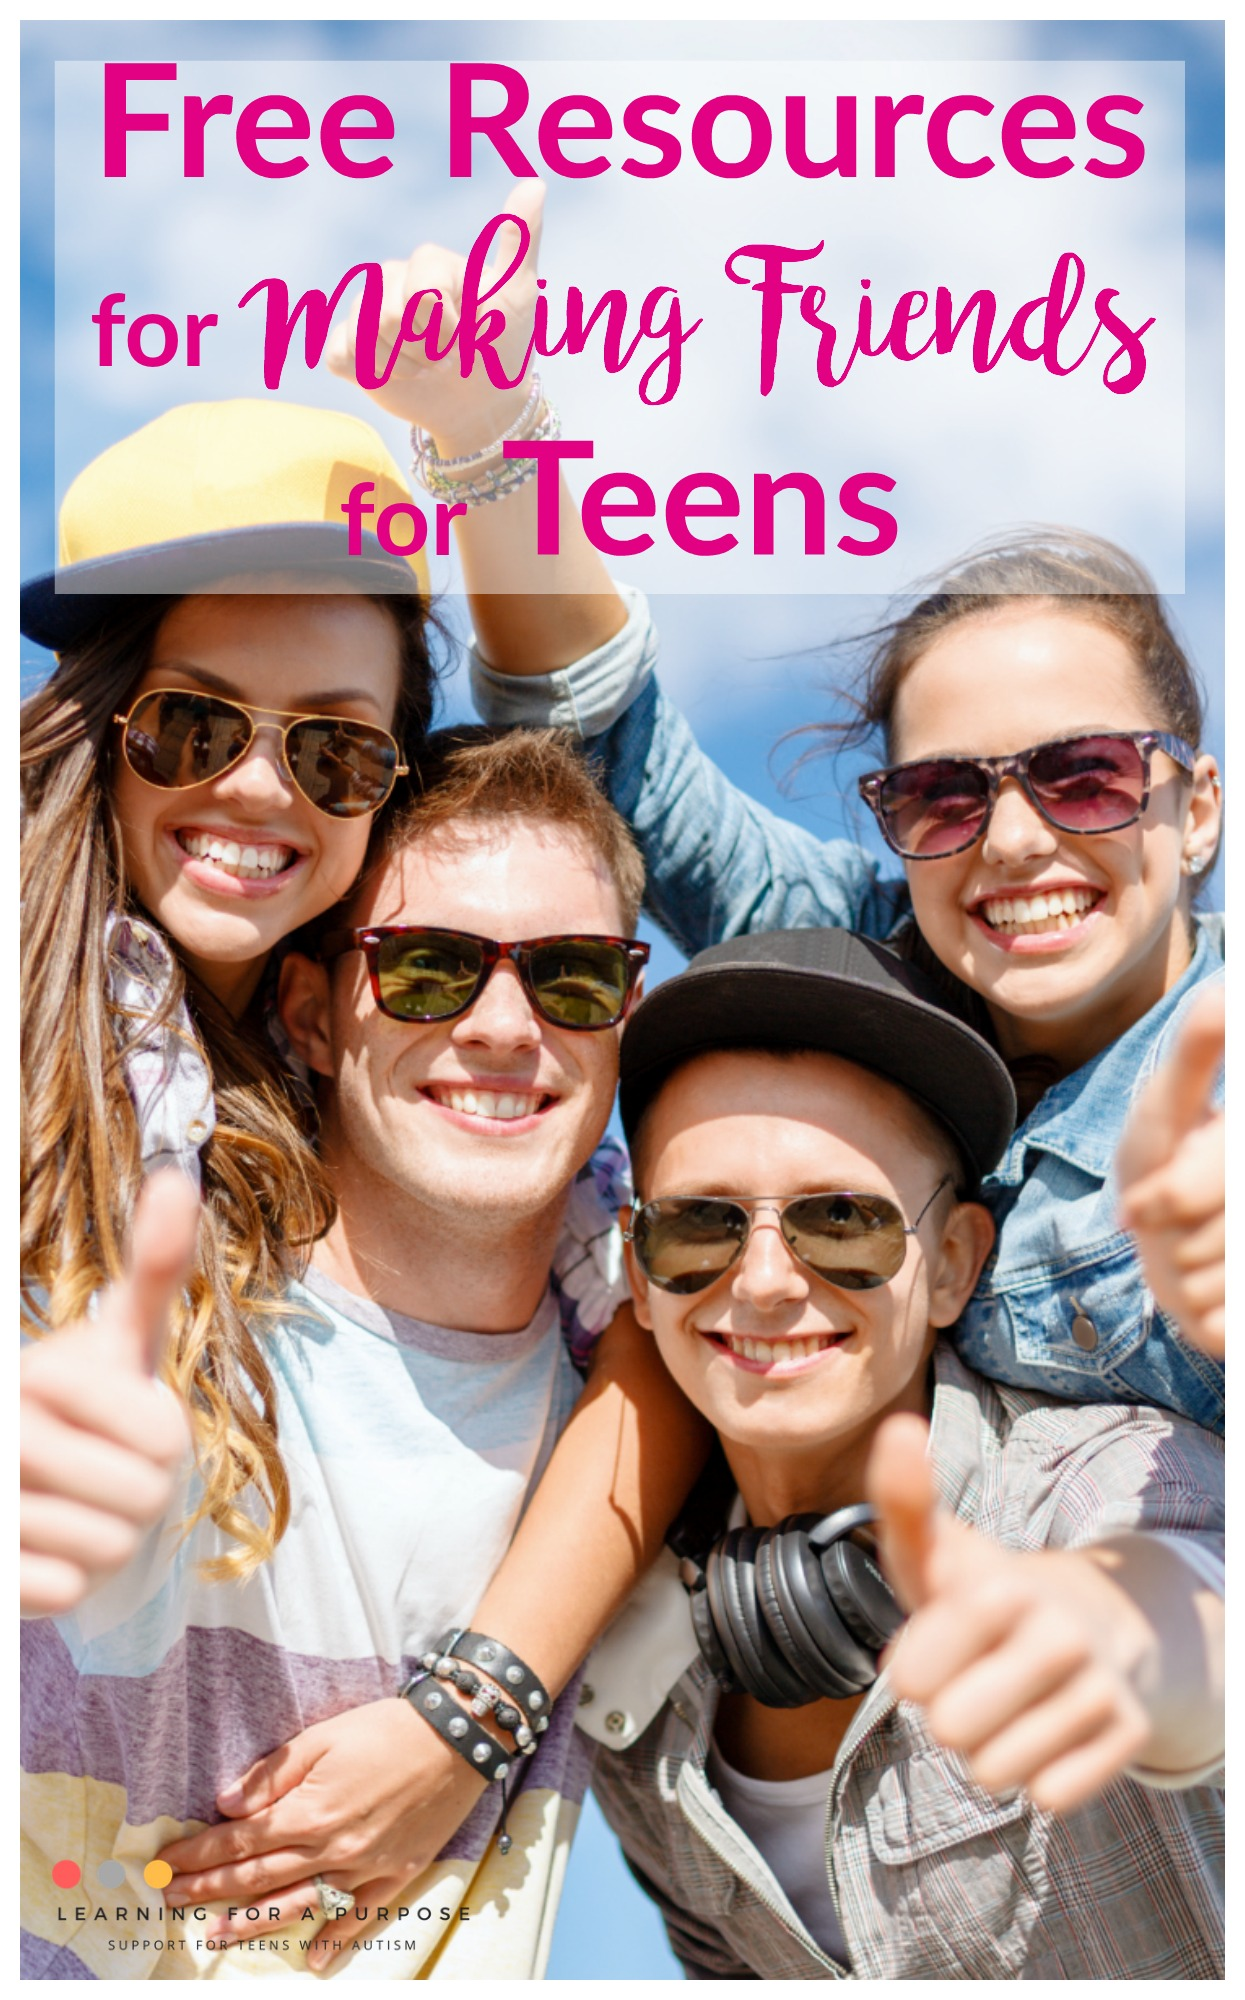 Free Resources for Making Friends for Teens #friendships